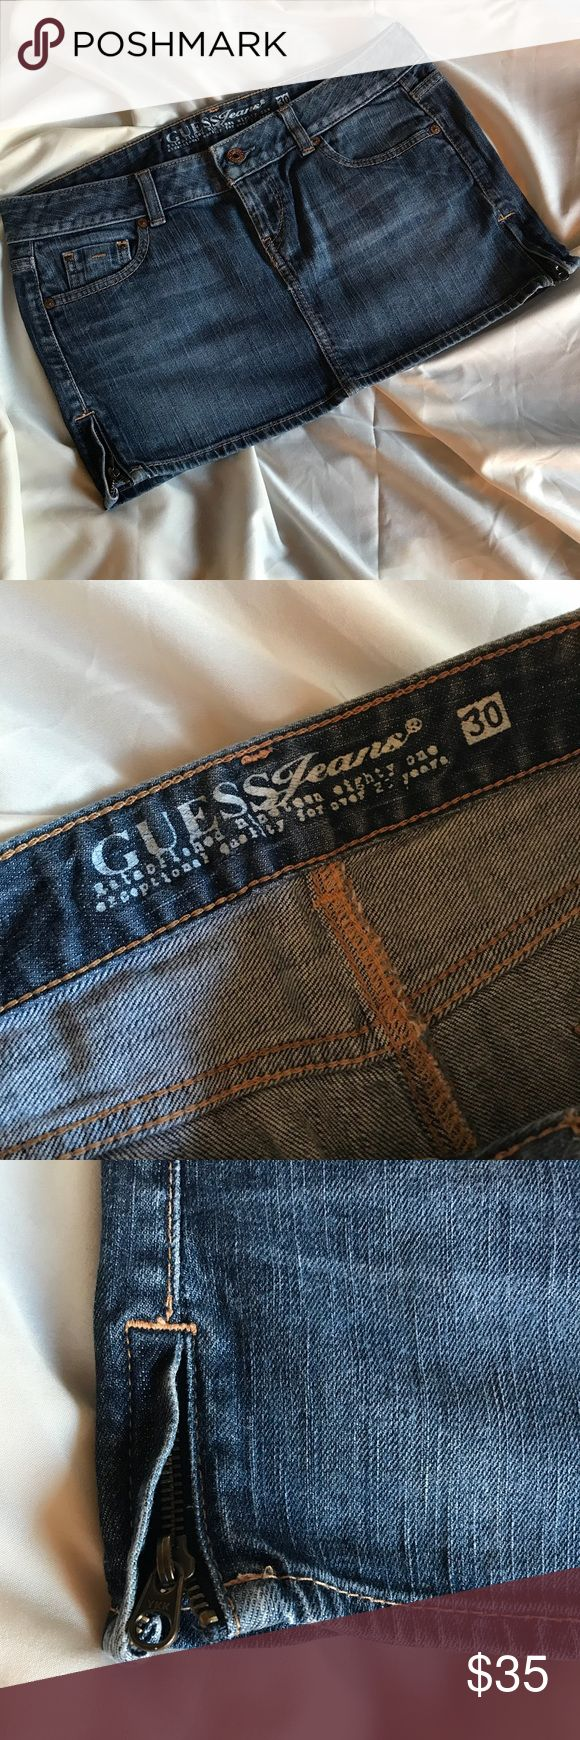 Guess Denim Mini Skirt 💋 Get ready for warm weather and skirt season! This Guess skirt is made of quality denim, a beautiful dark wash color and size 30. It has cute side zipper details and the legendary Guess logo in the back. It's like new and ready for action. Please feel free to contact me with any questions.  *** My items come from a smoke free home with a dog. Open to reasonable offers 😊 Guess Skirts Mini